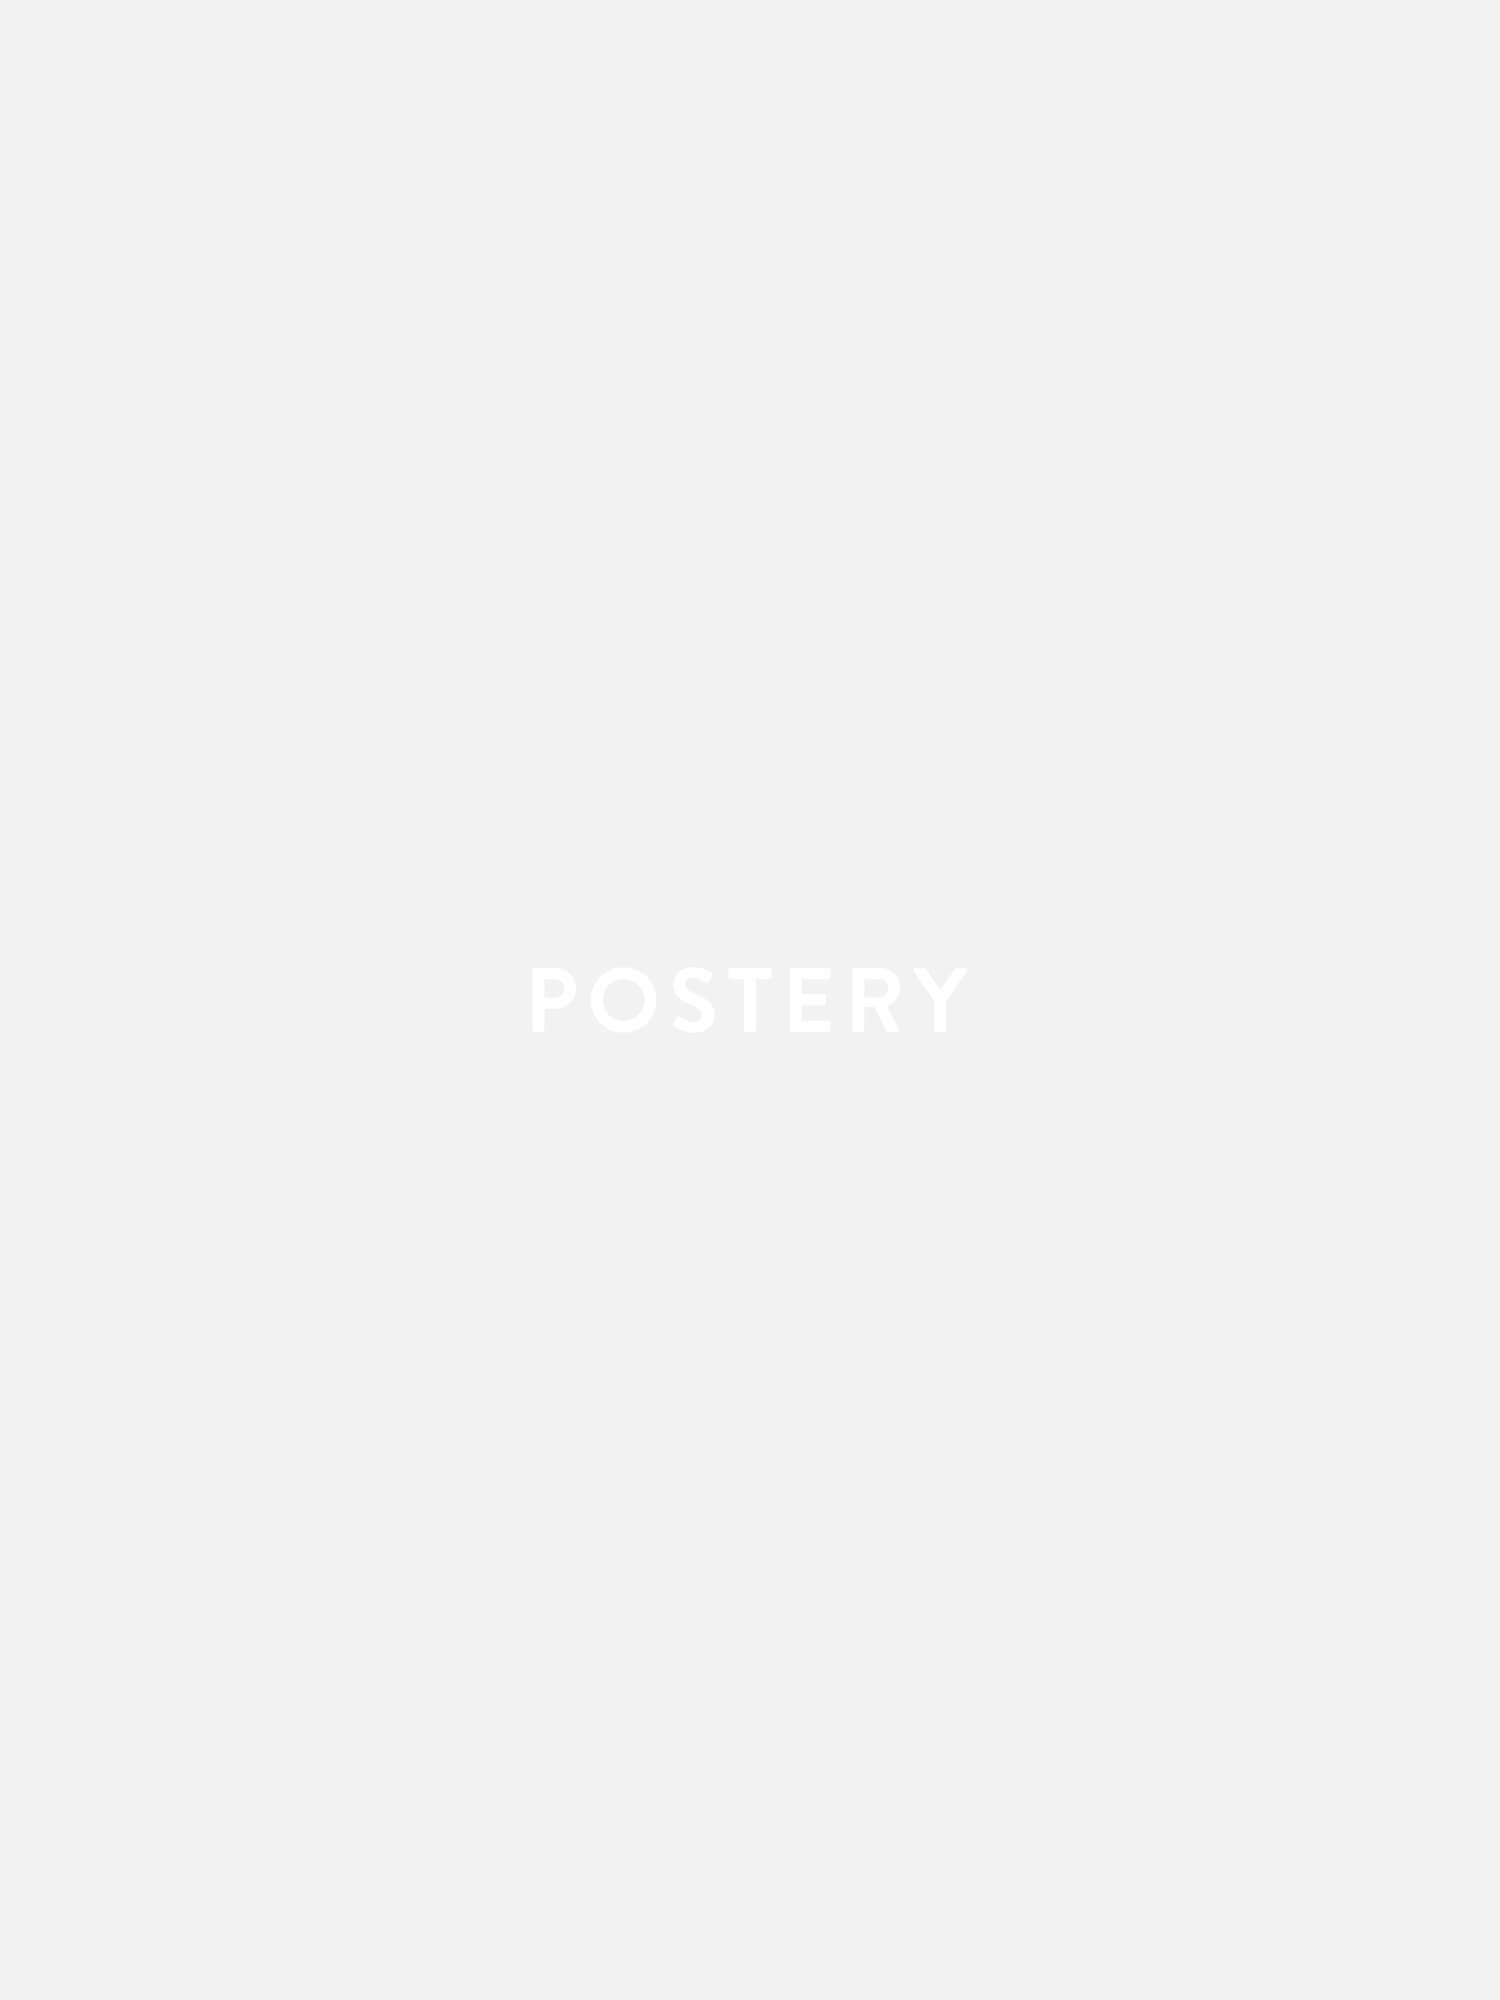 Steamed Buns Poster